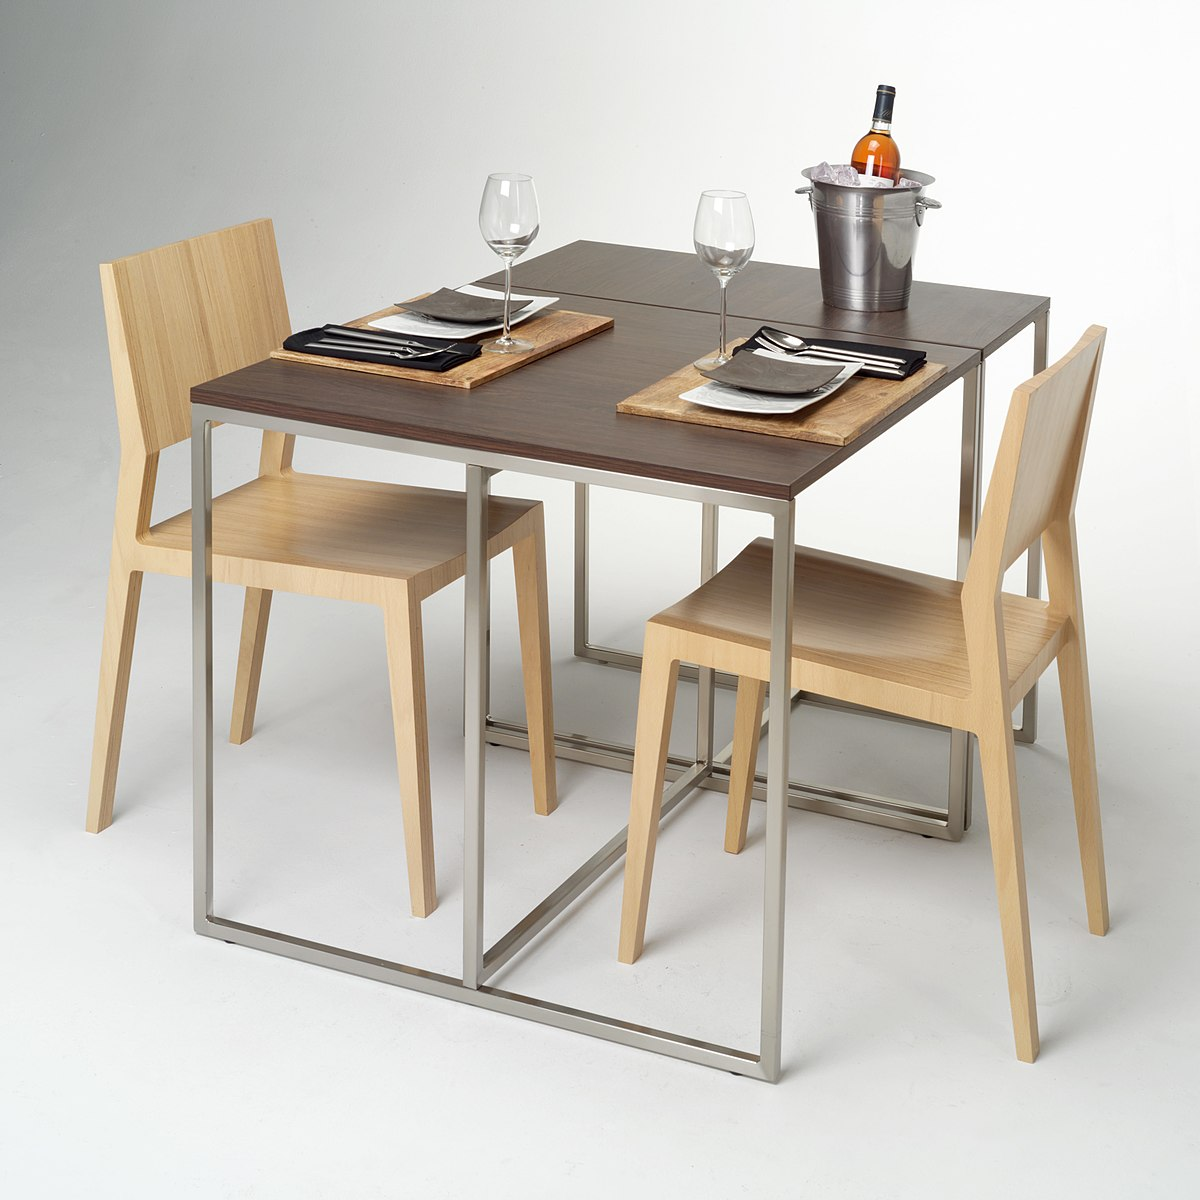 Furniture wikipedia for Design restaurant table